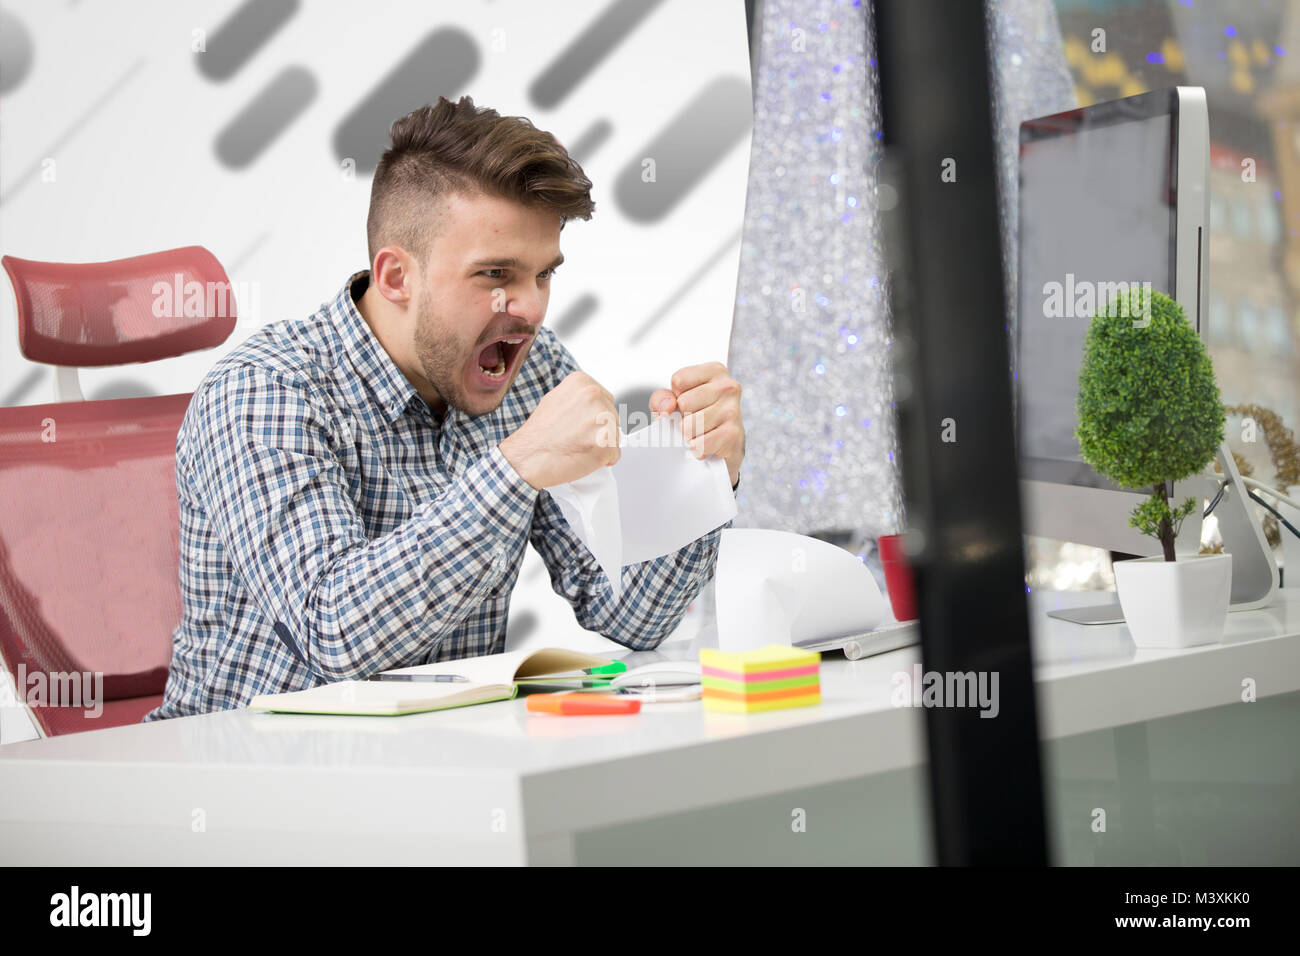 business, people, stress, emotions and fail concept - angry businessman throwing papers in office - Stock Image